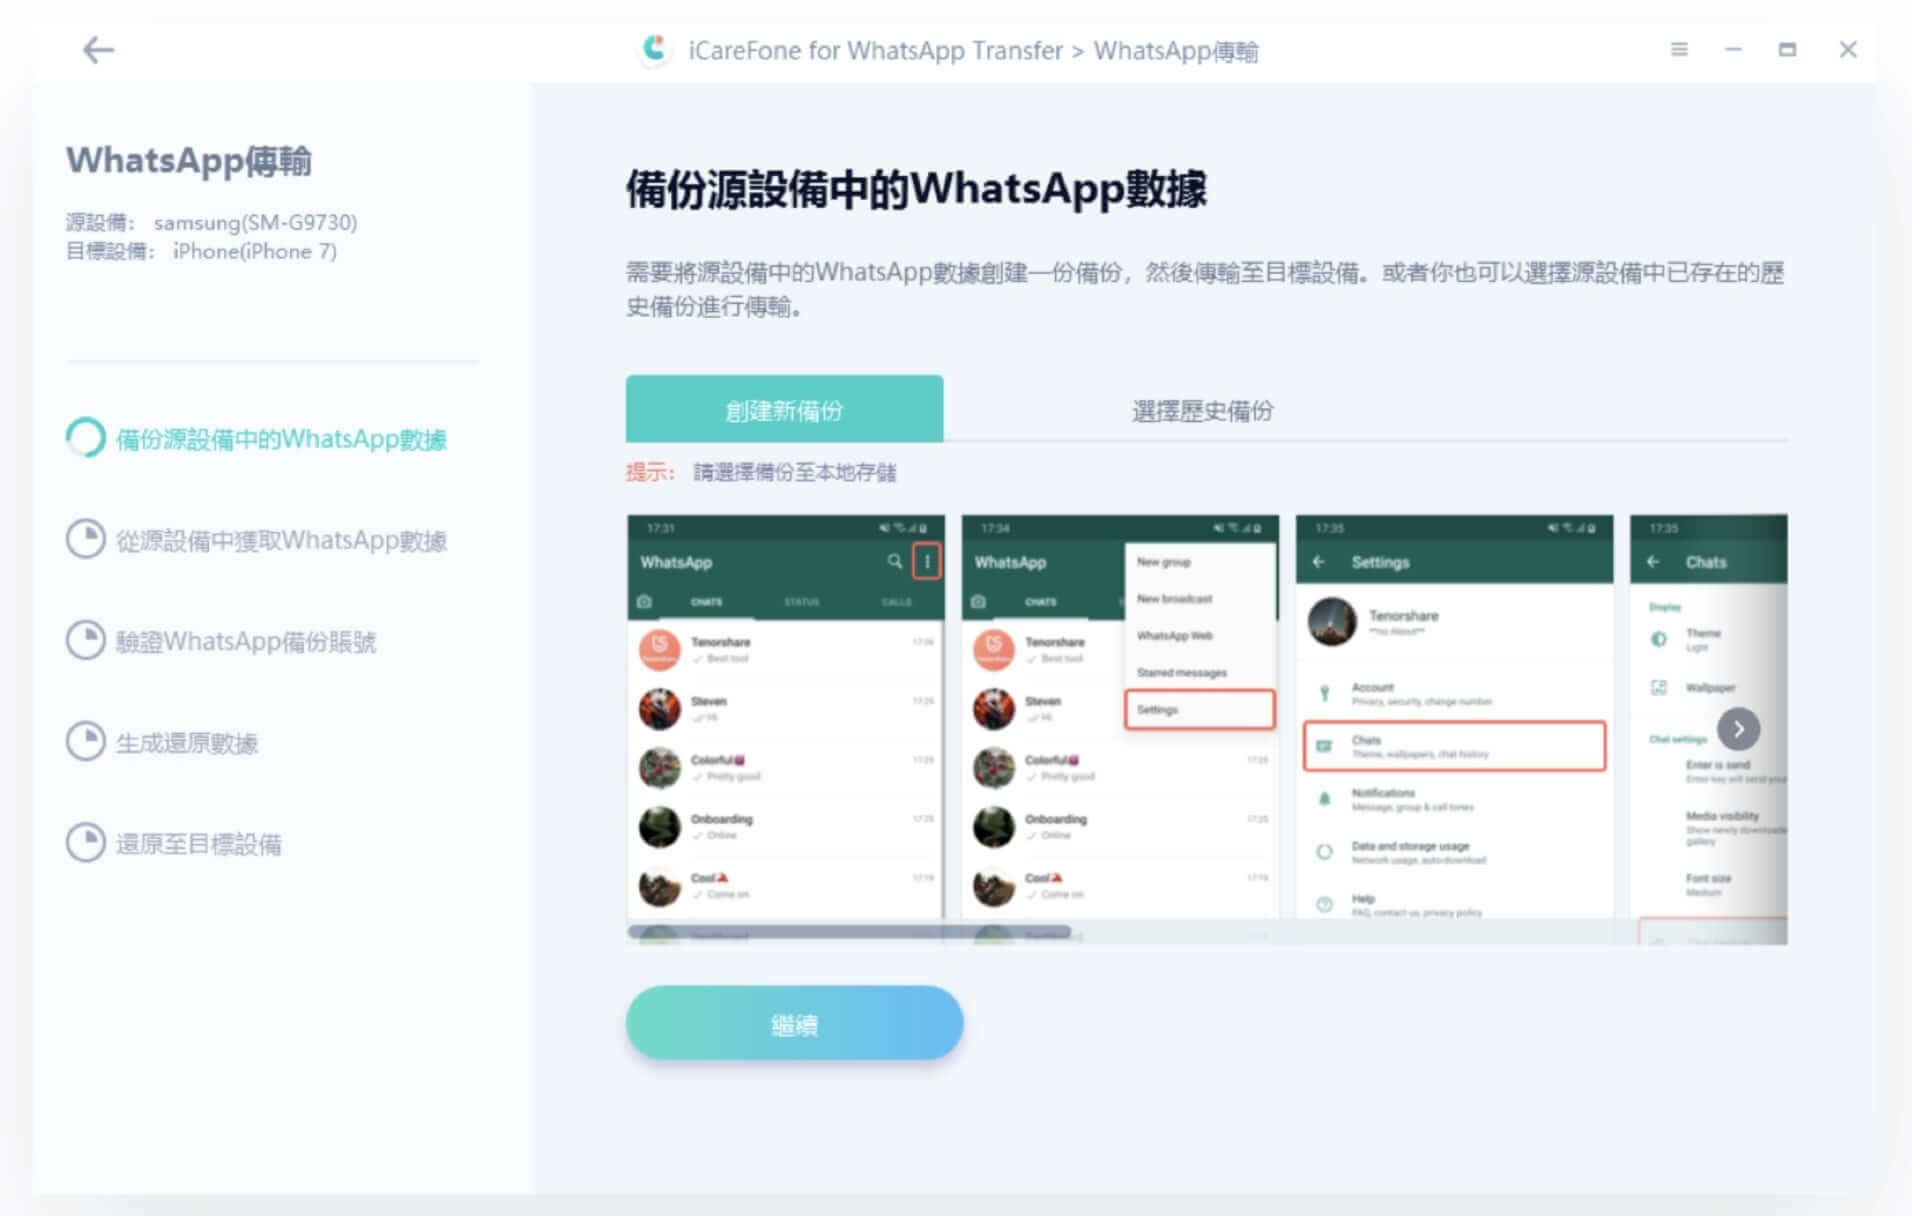 轉移 WhatsApp 數據